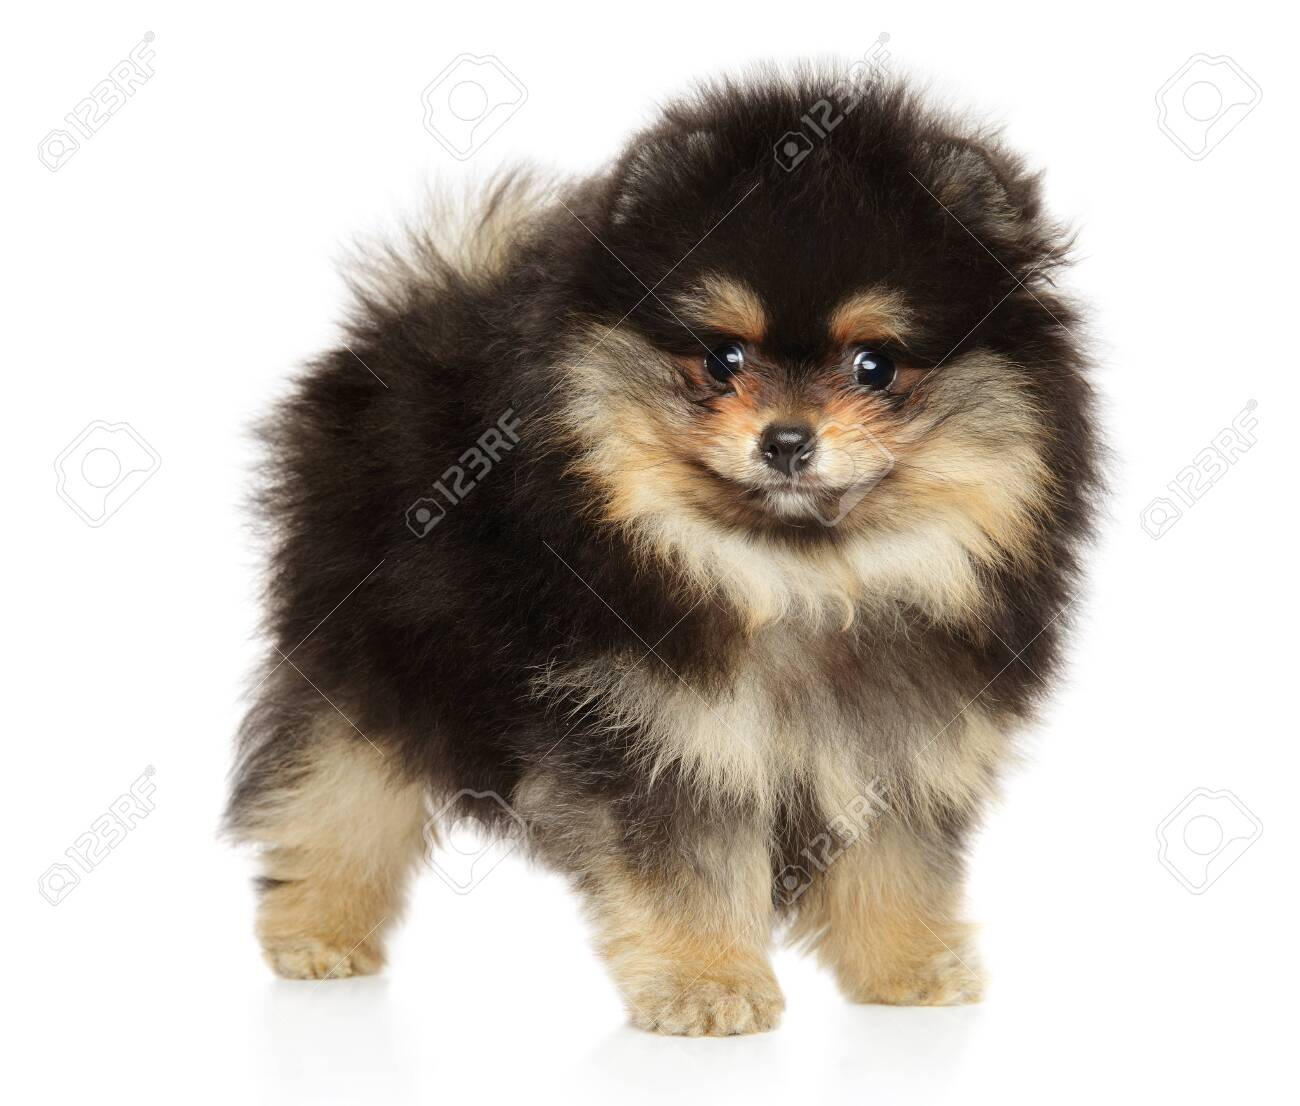 Pomeranian Puppy In A Stand On A White Background Baby Animal Stock Photo Picture And Royalty Free Image Image 143464596